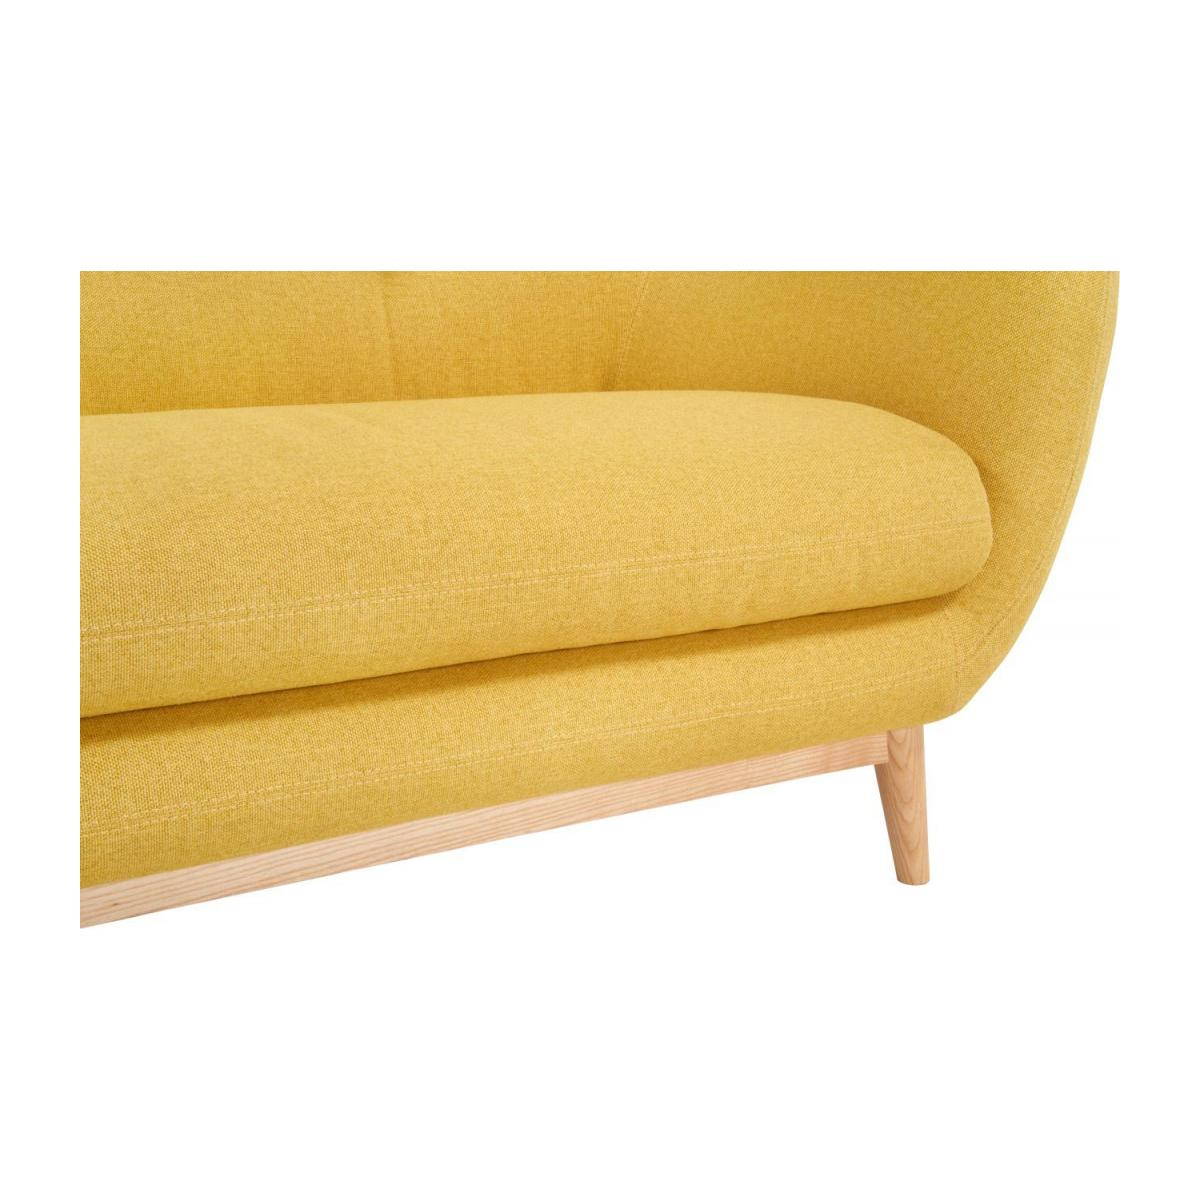 3-seat sofa made of fabric, yellow n°6